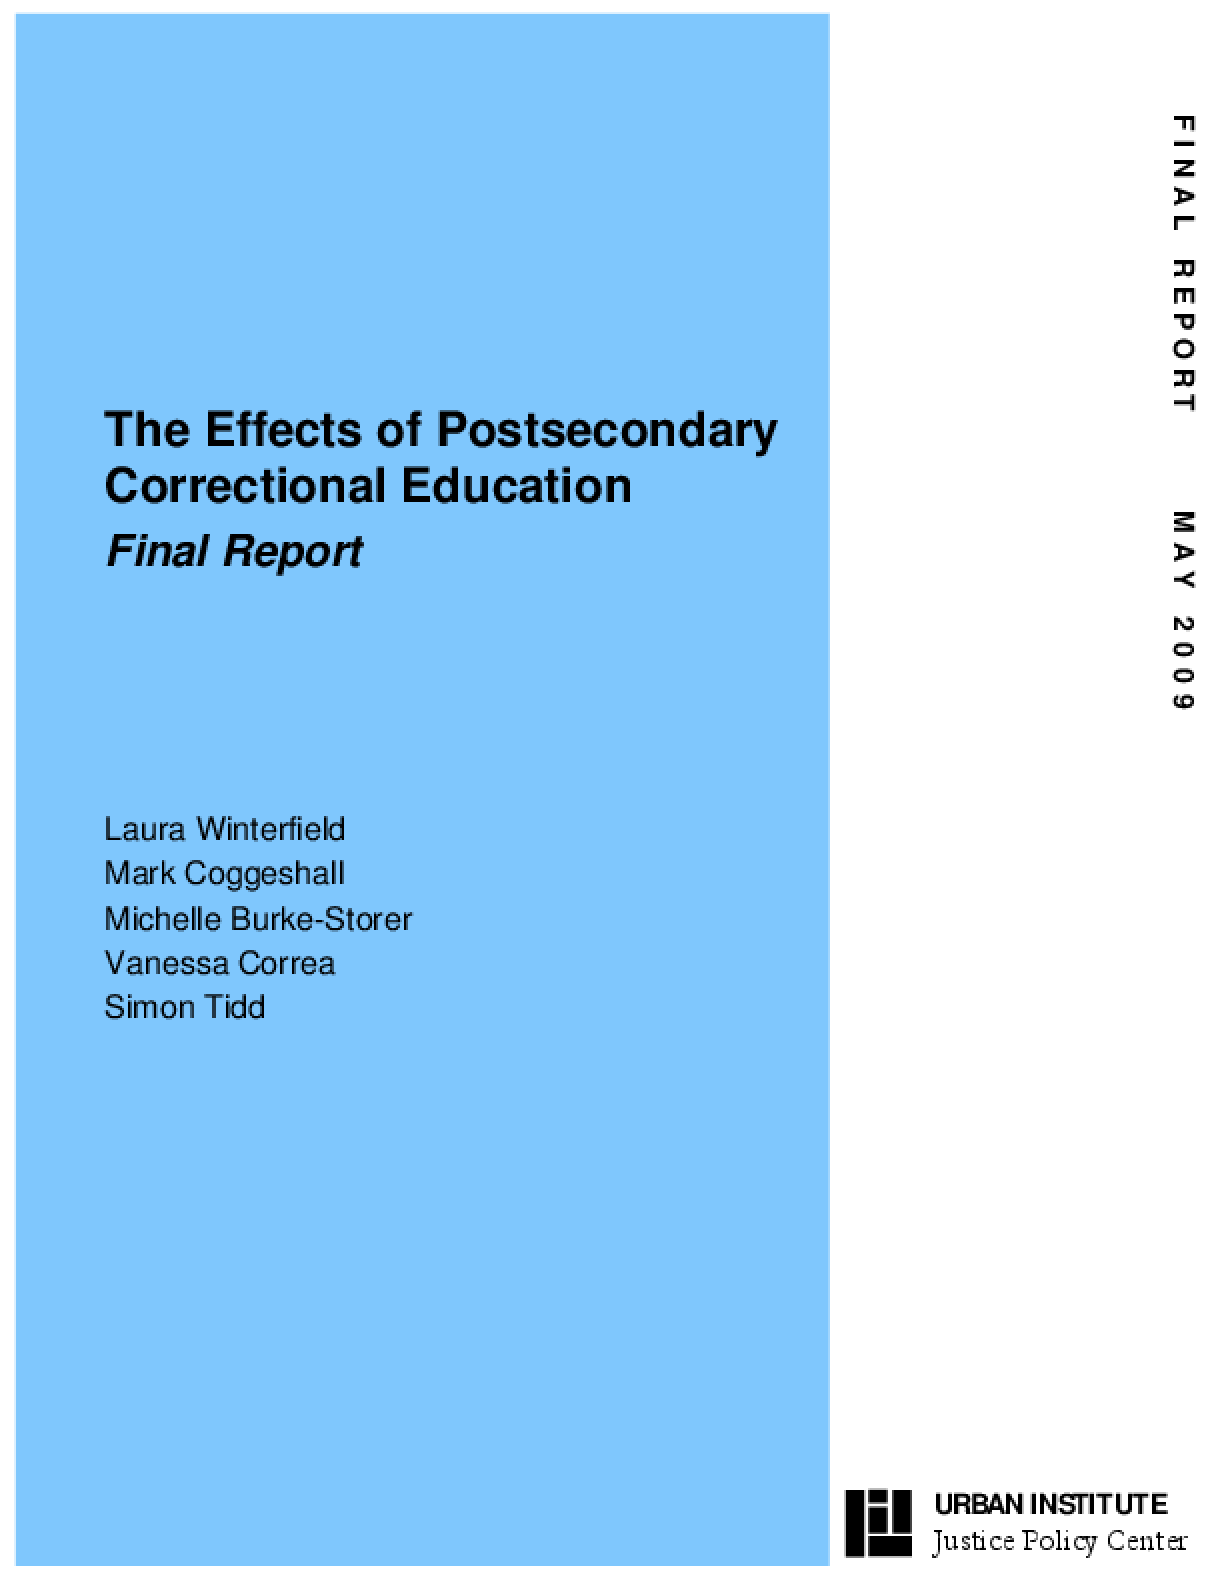 The Effects of Postsecondary Correctional Education